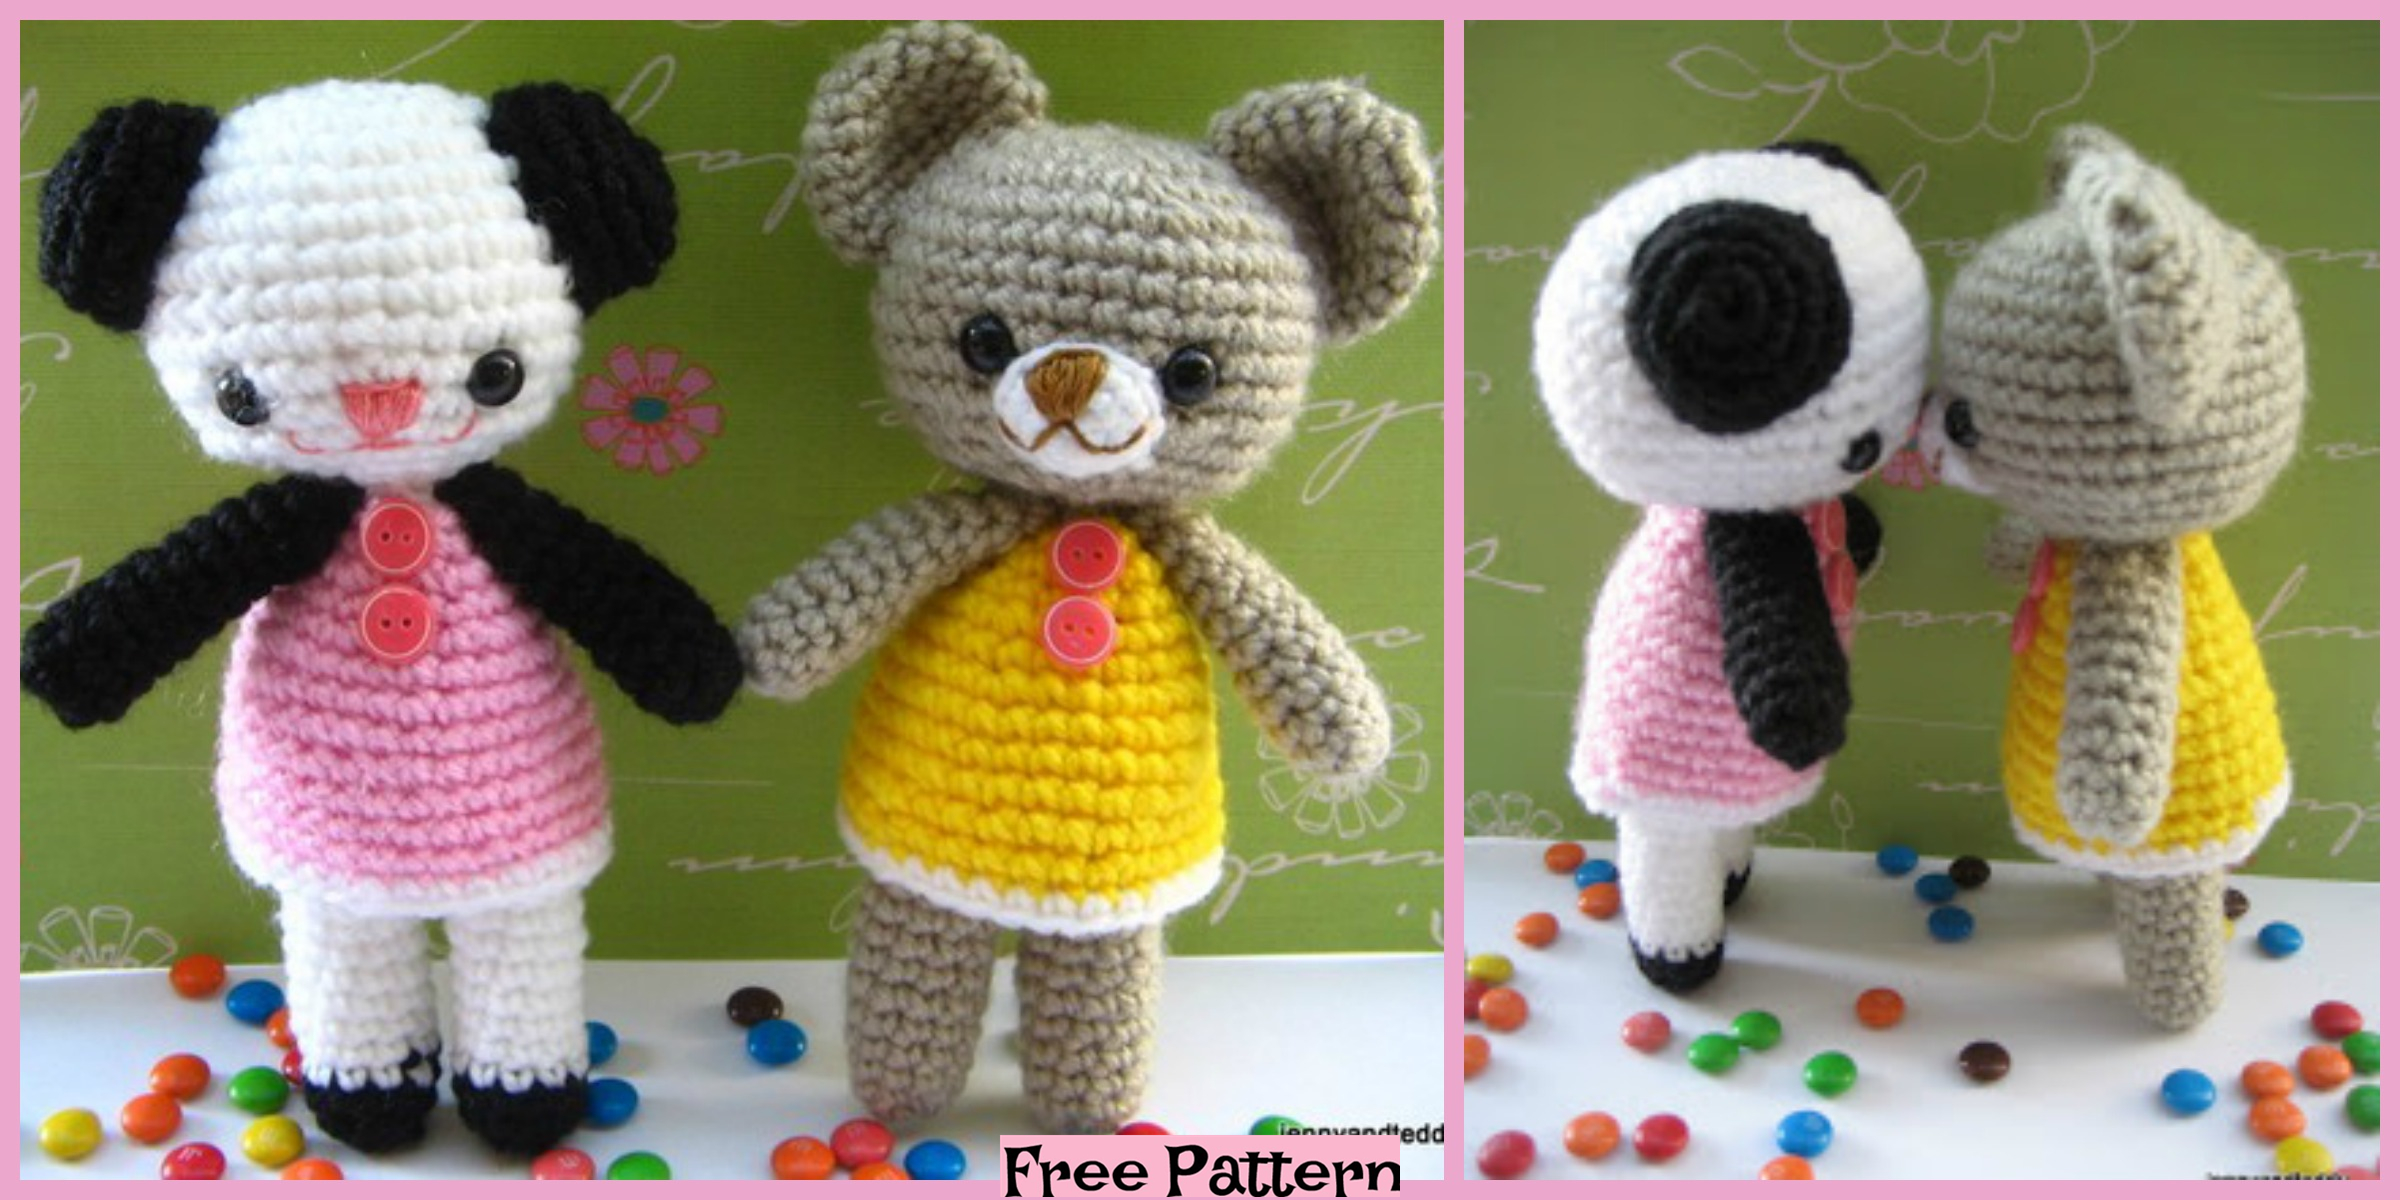 Crochet Two Little Teddy Bears – Free Pattern